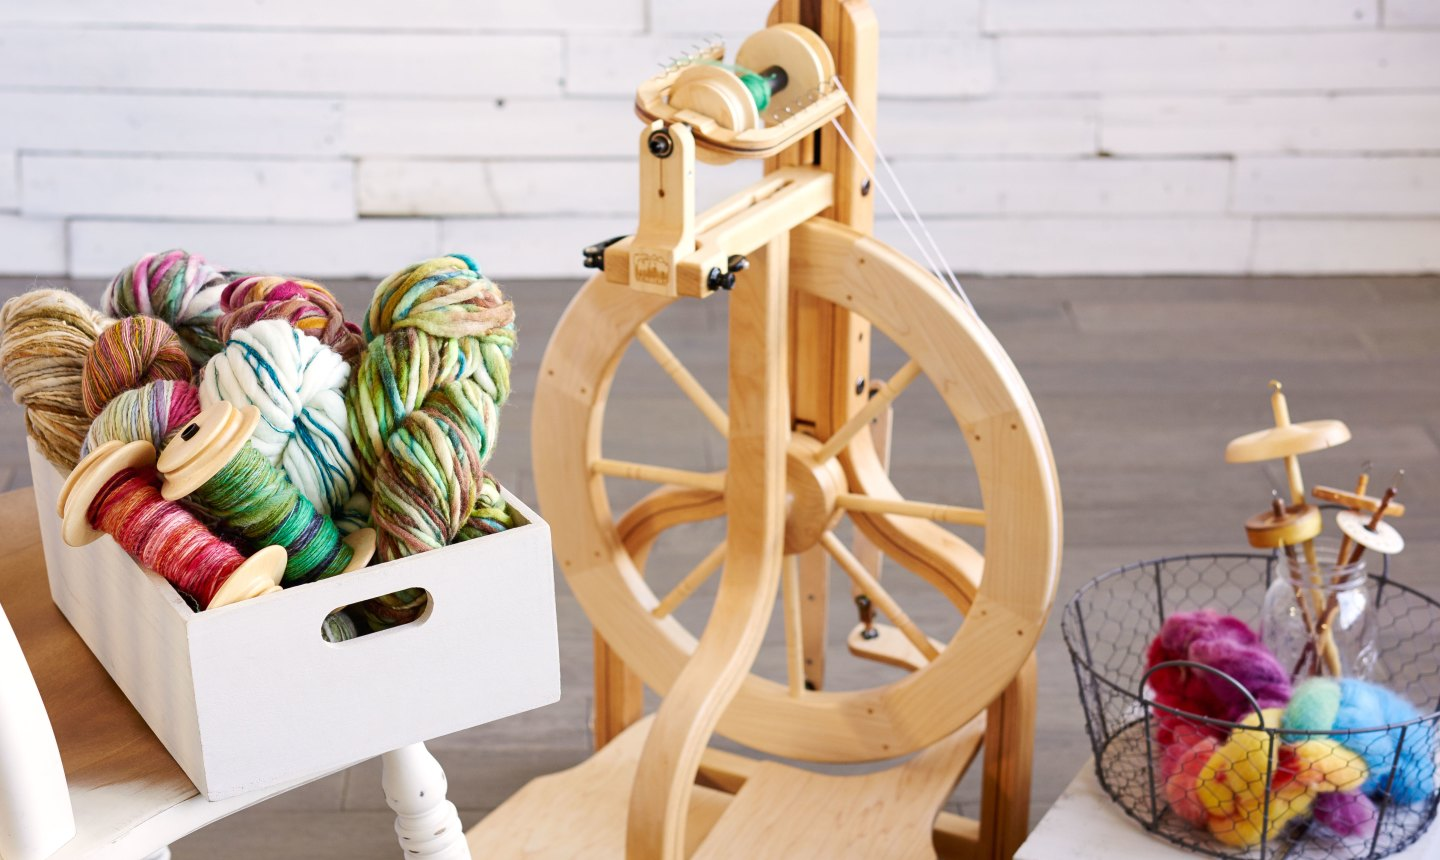 small spinning wheel with yarn